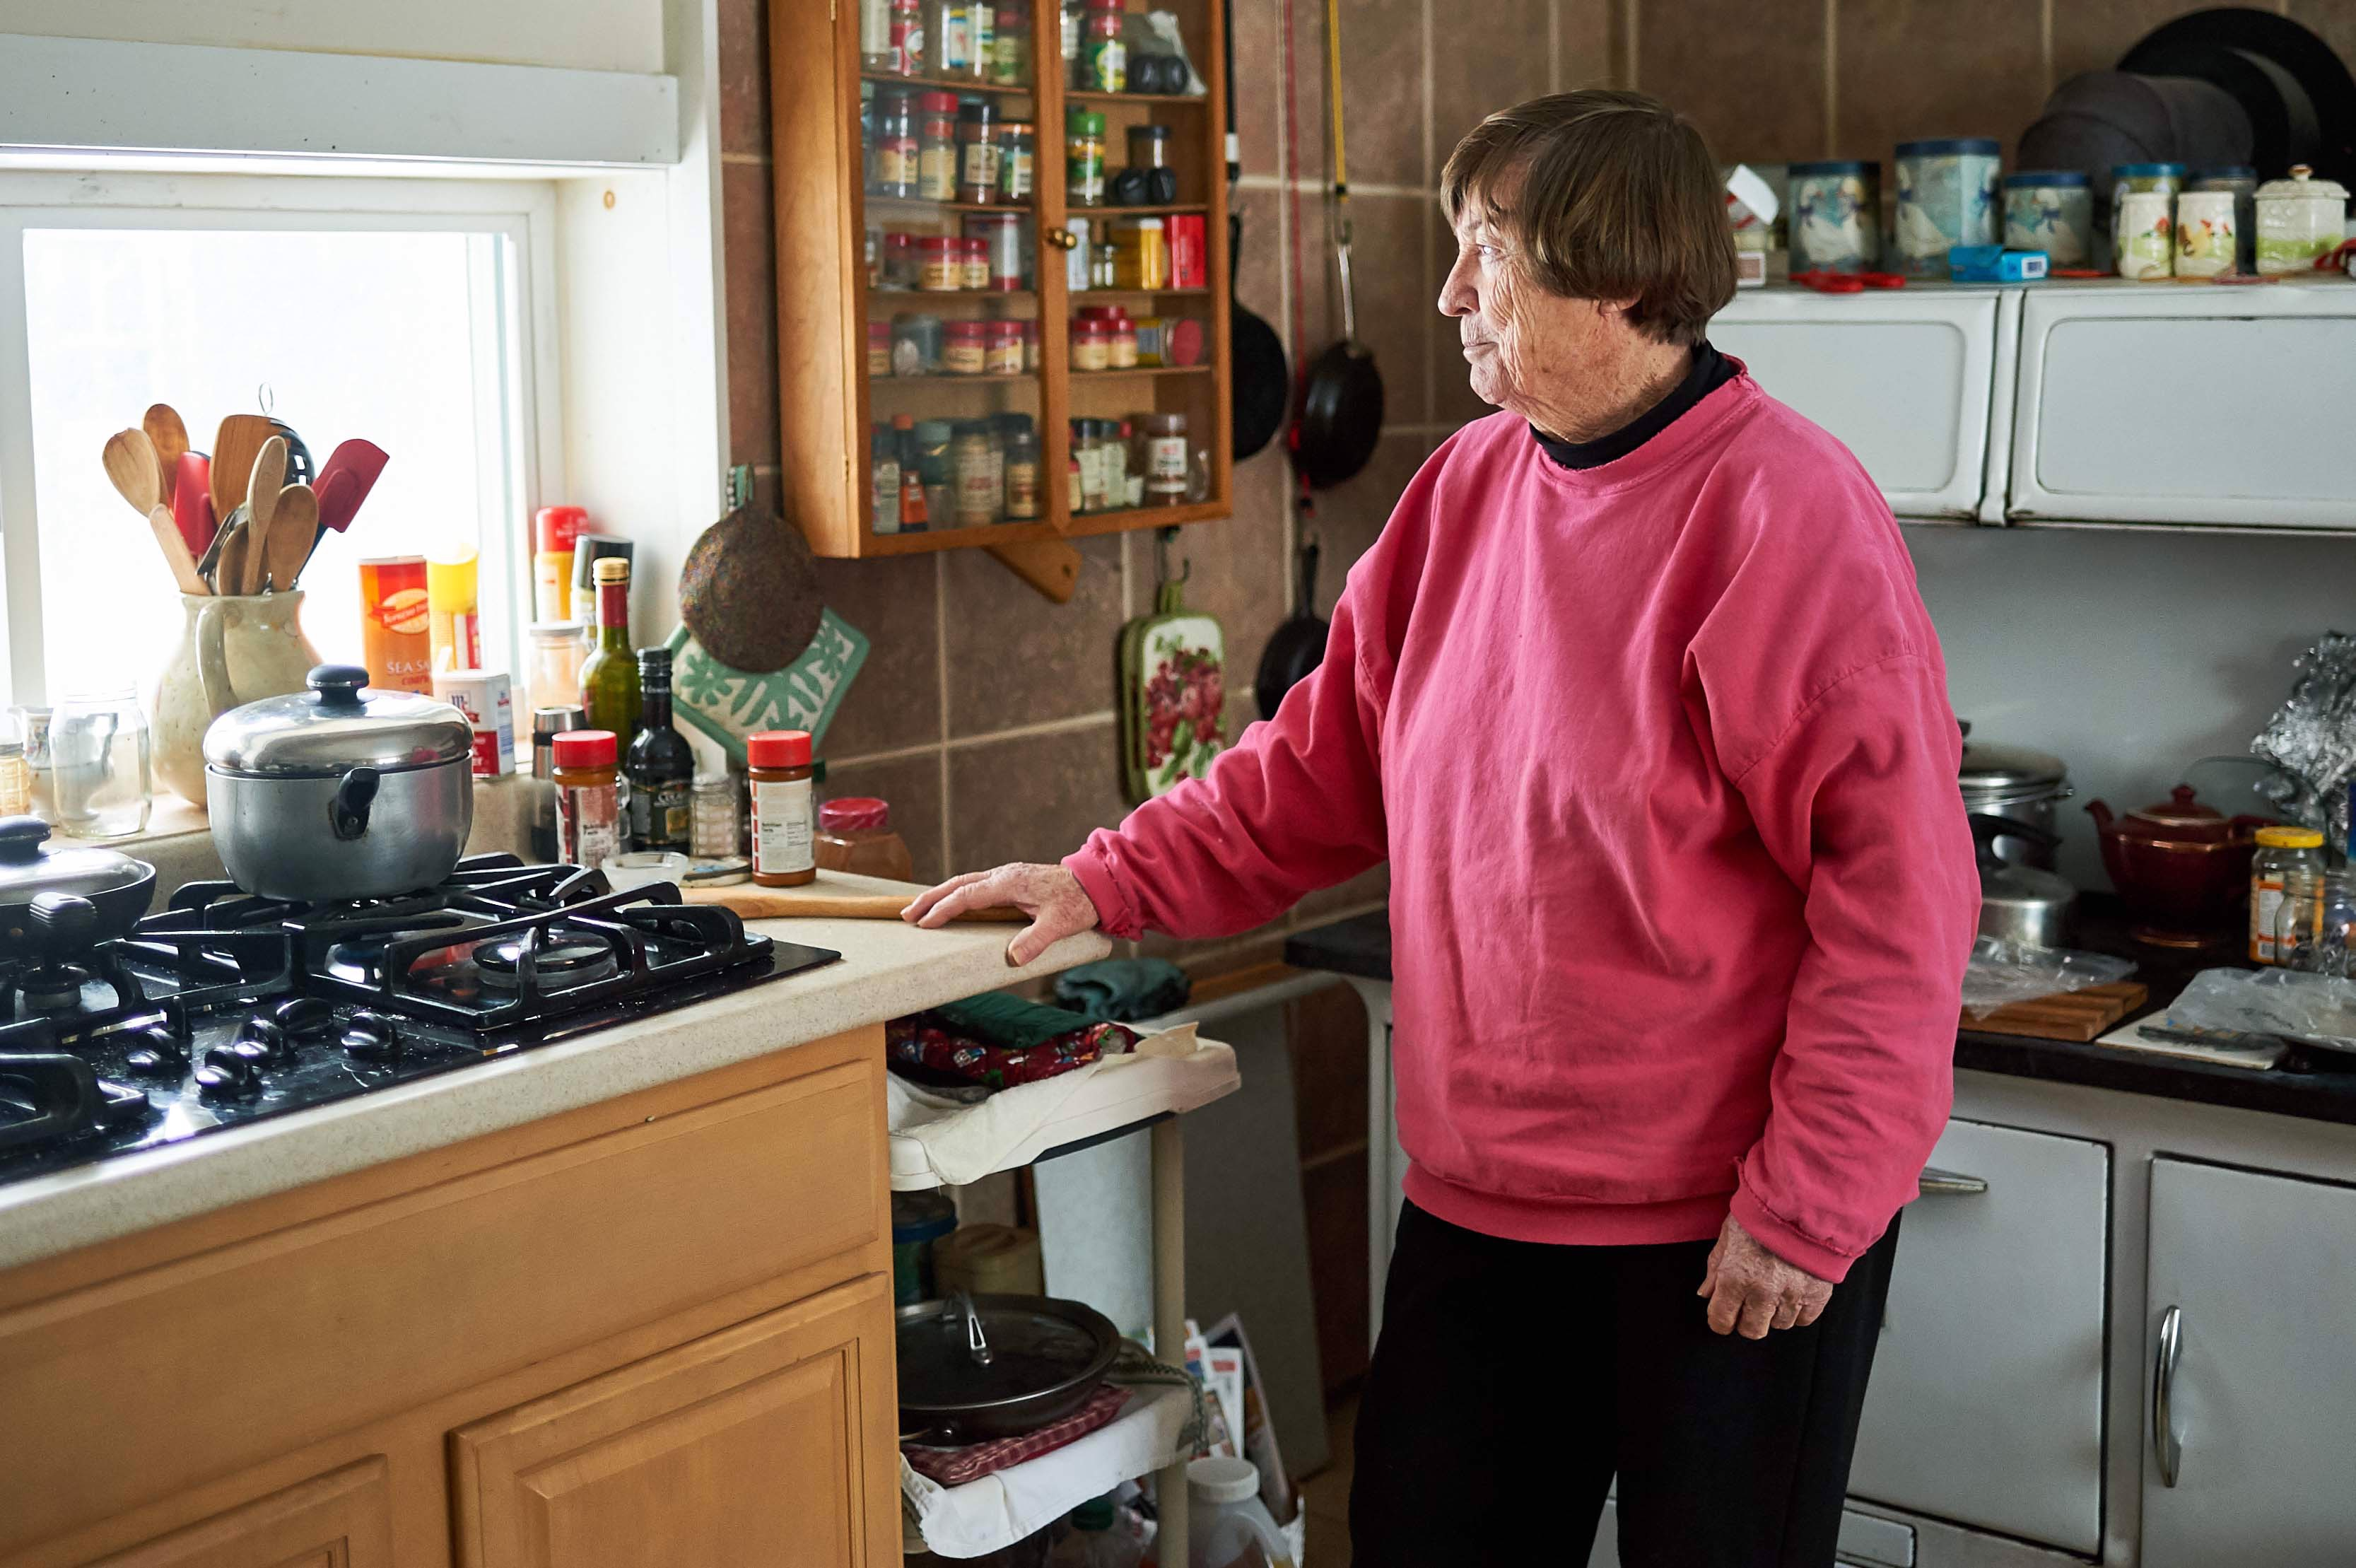 An elderly woman wearing a pink sweatshirt stands in her kitchen, staring out the window